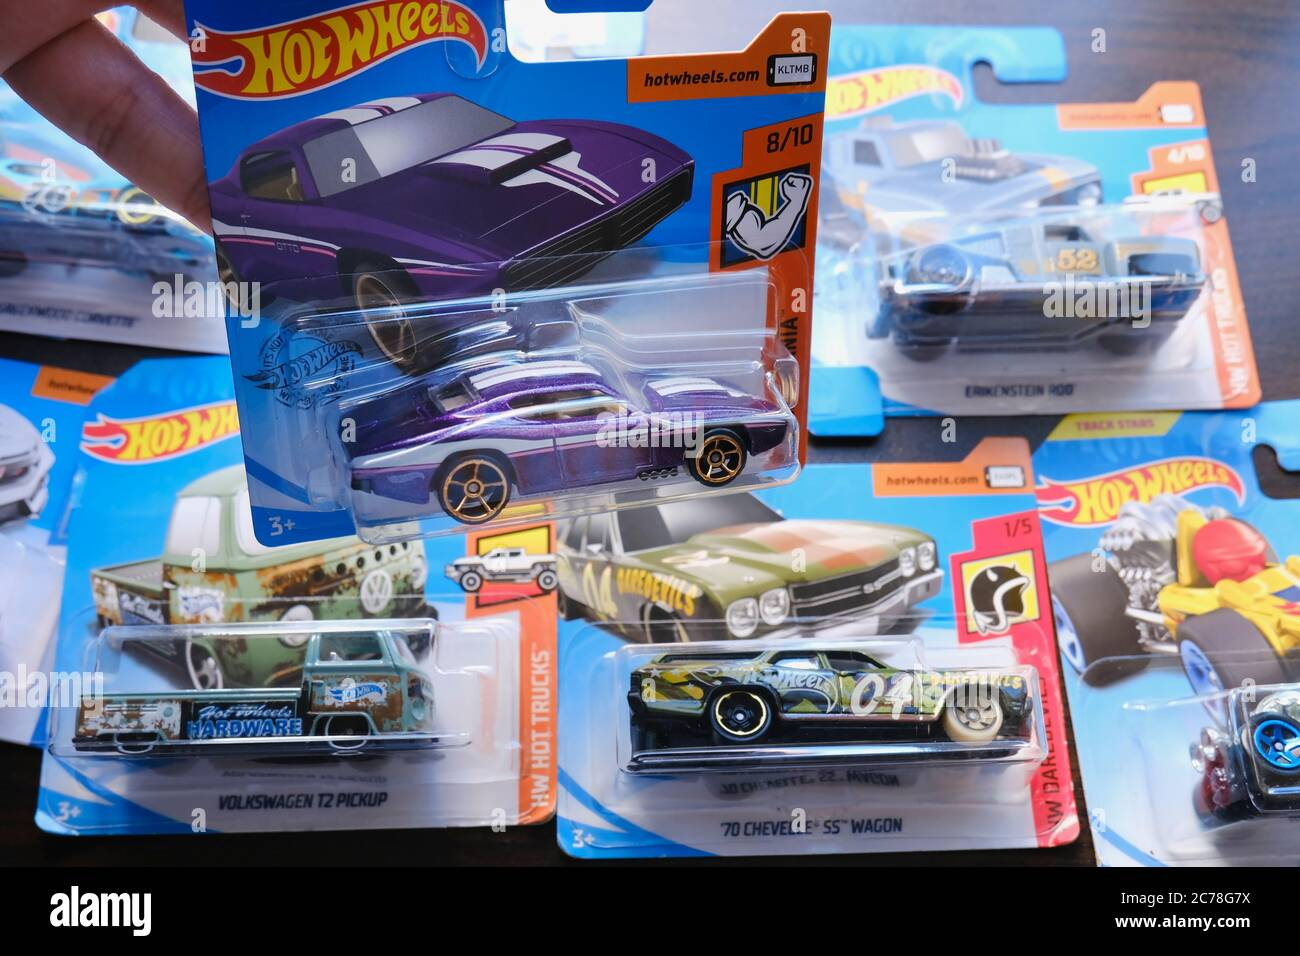 Istanbul, Turkey - July 12, 2020: A Hot Wheels purple American custom diecast toy car from Muscle Mania serie on hand and others at the background on Stock Photo